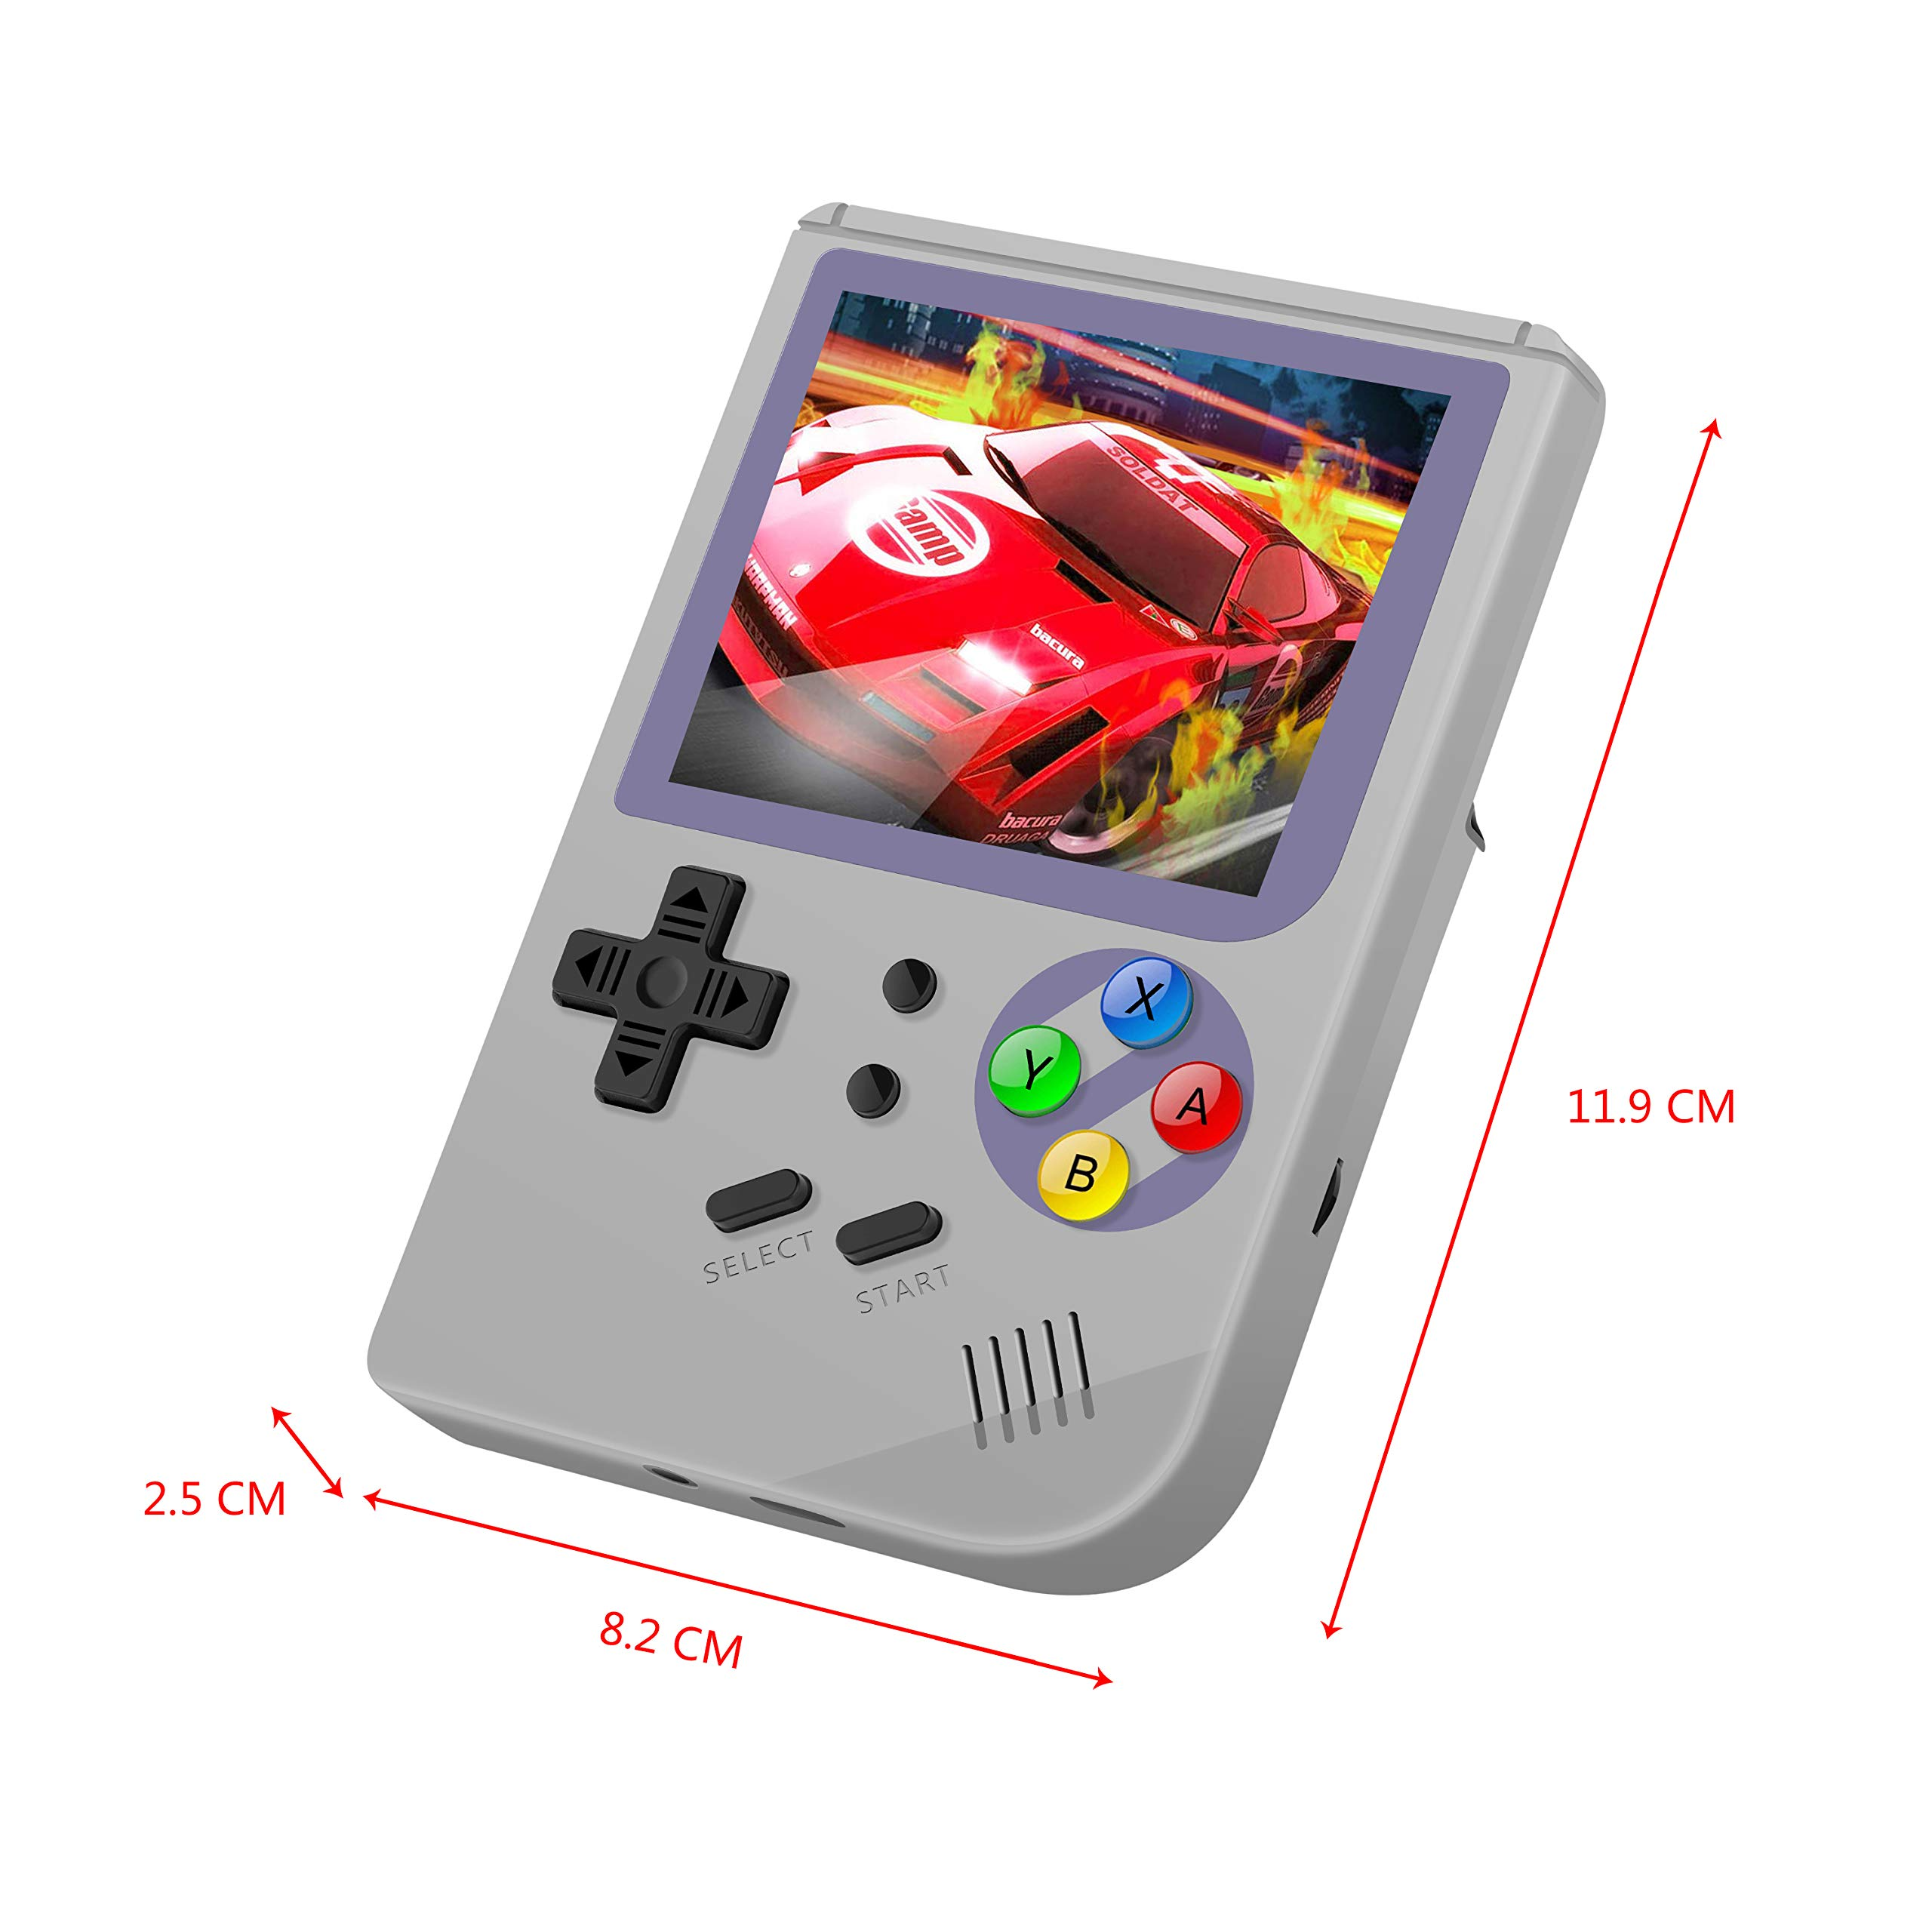 MJKJ Handheld Game Console ,RG300 Retro Game Console OpenDingux Tony System , Free with 32G TF Card Built-in 3007 Classic Game Console 3 Inch HD Screen Portable Video Game Console - Gray by MJKJ (Image #7)